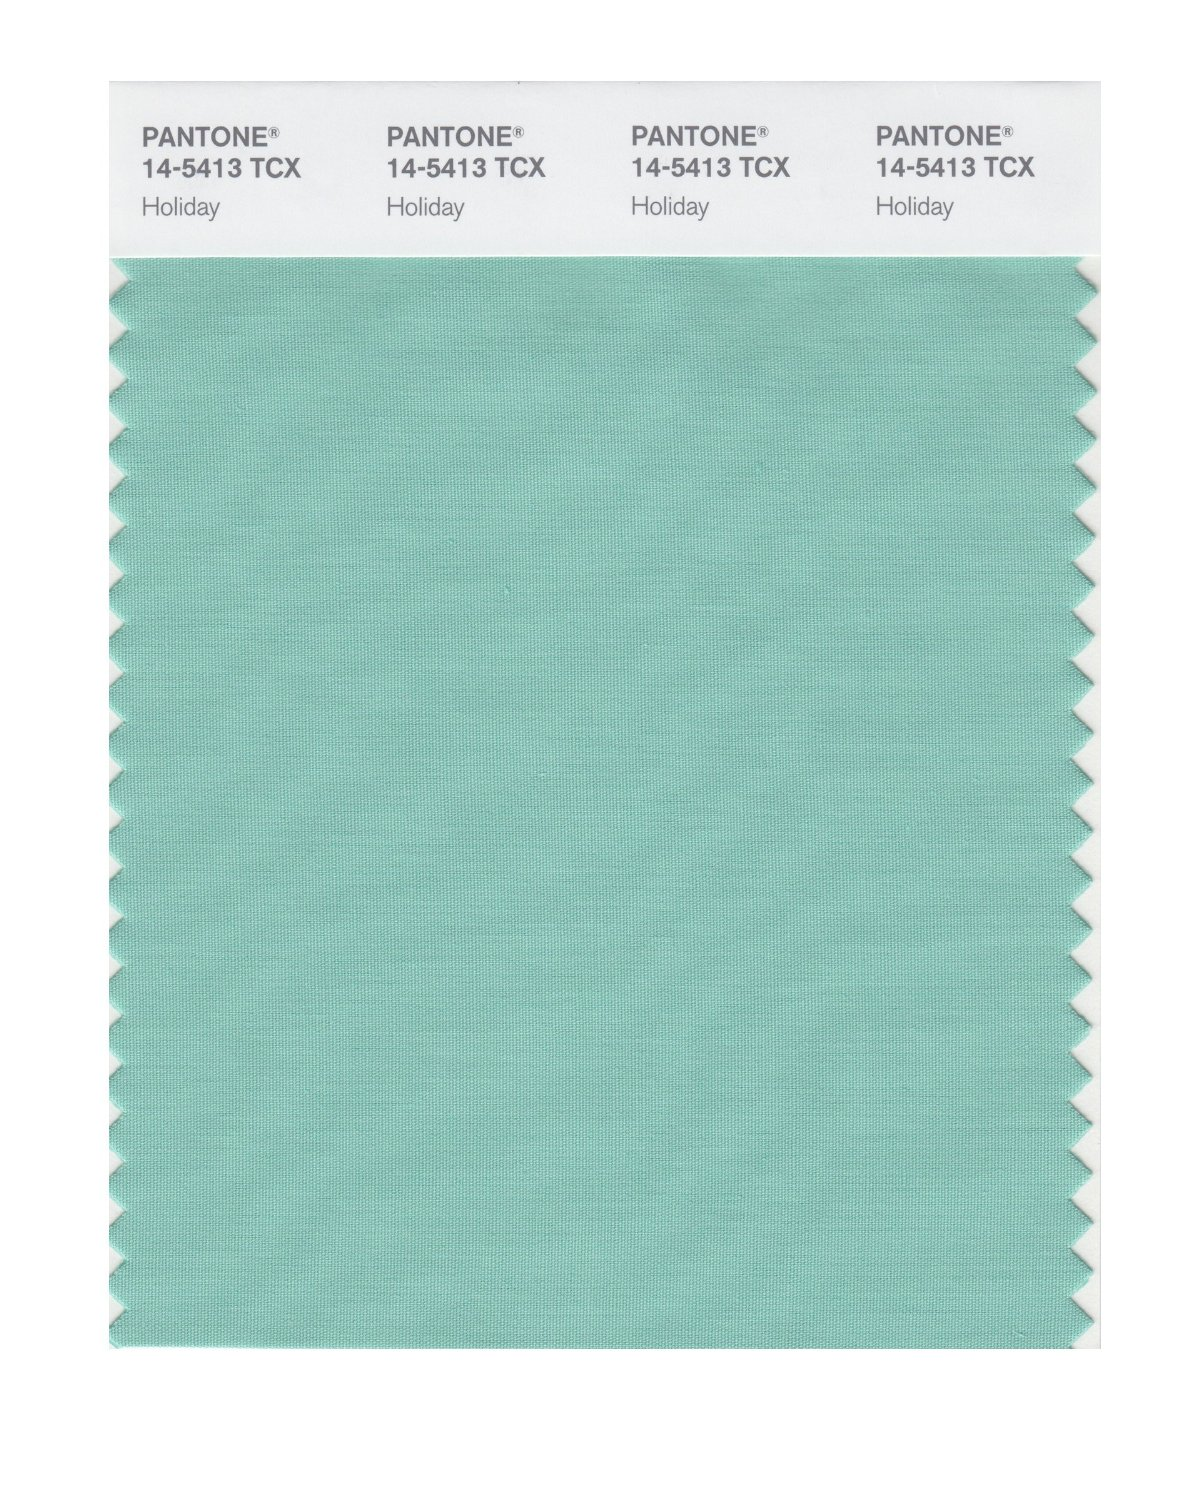 Pantone Smart Swatch 14-5413 Holiday